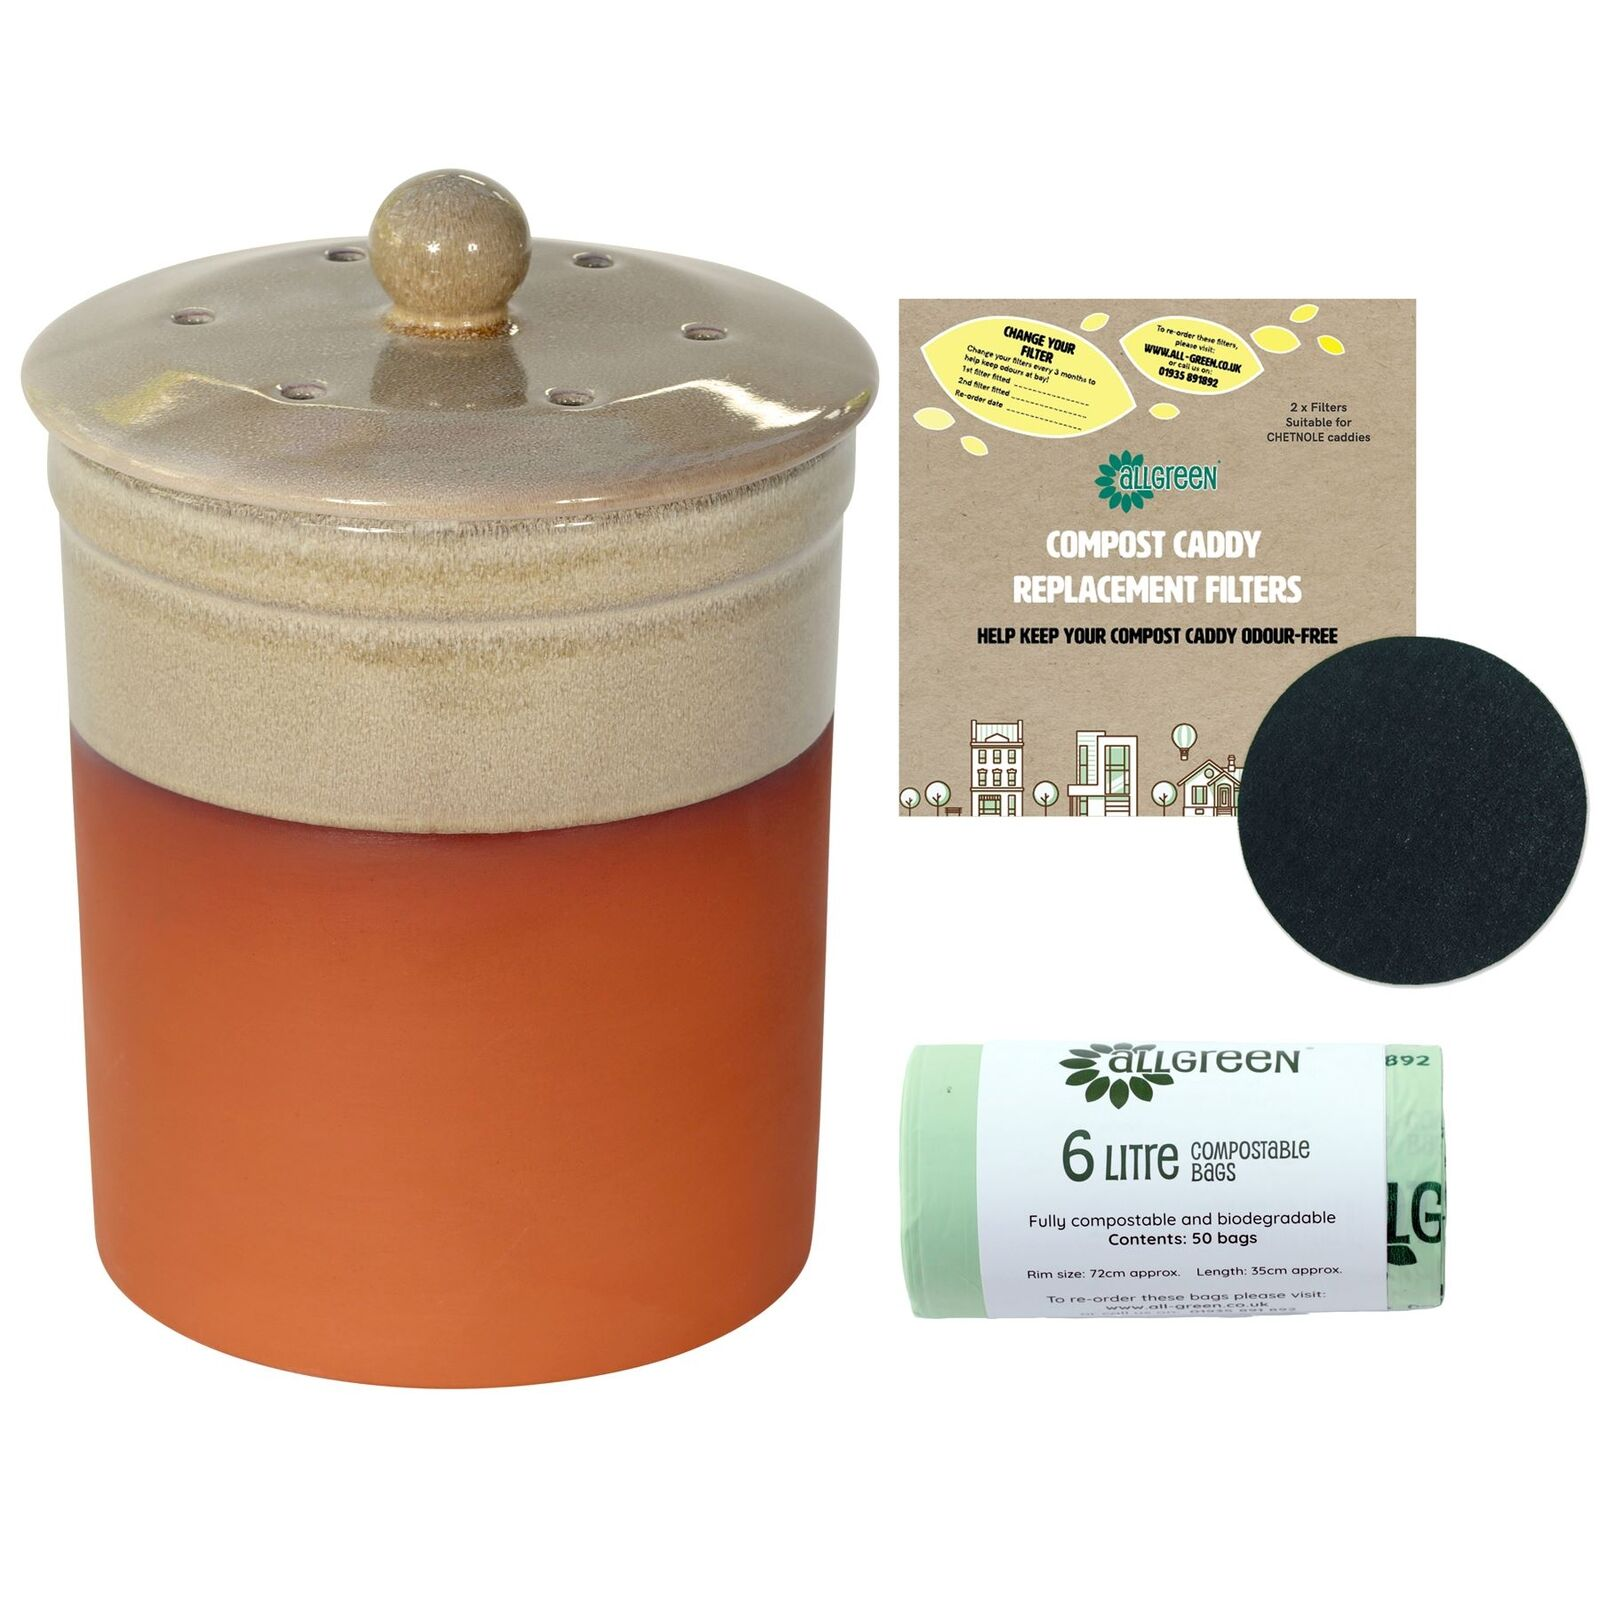 Chetnole Terracotta Ceramic Caddy-Sand-2xFilters&50x6L Compostable Bags